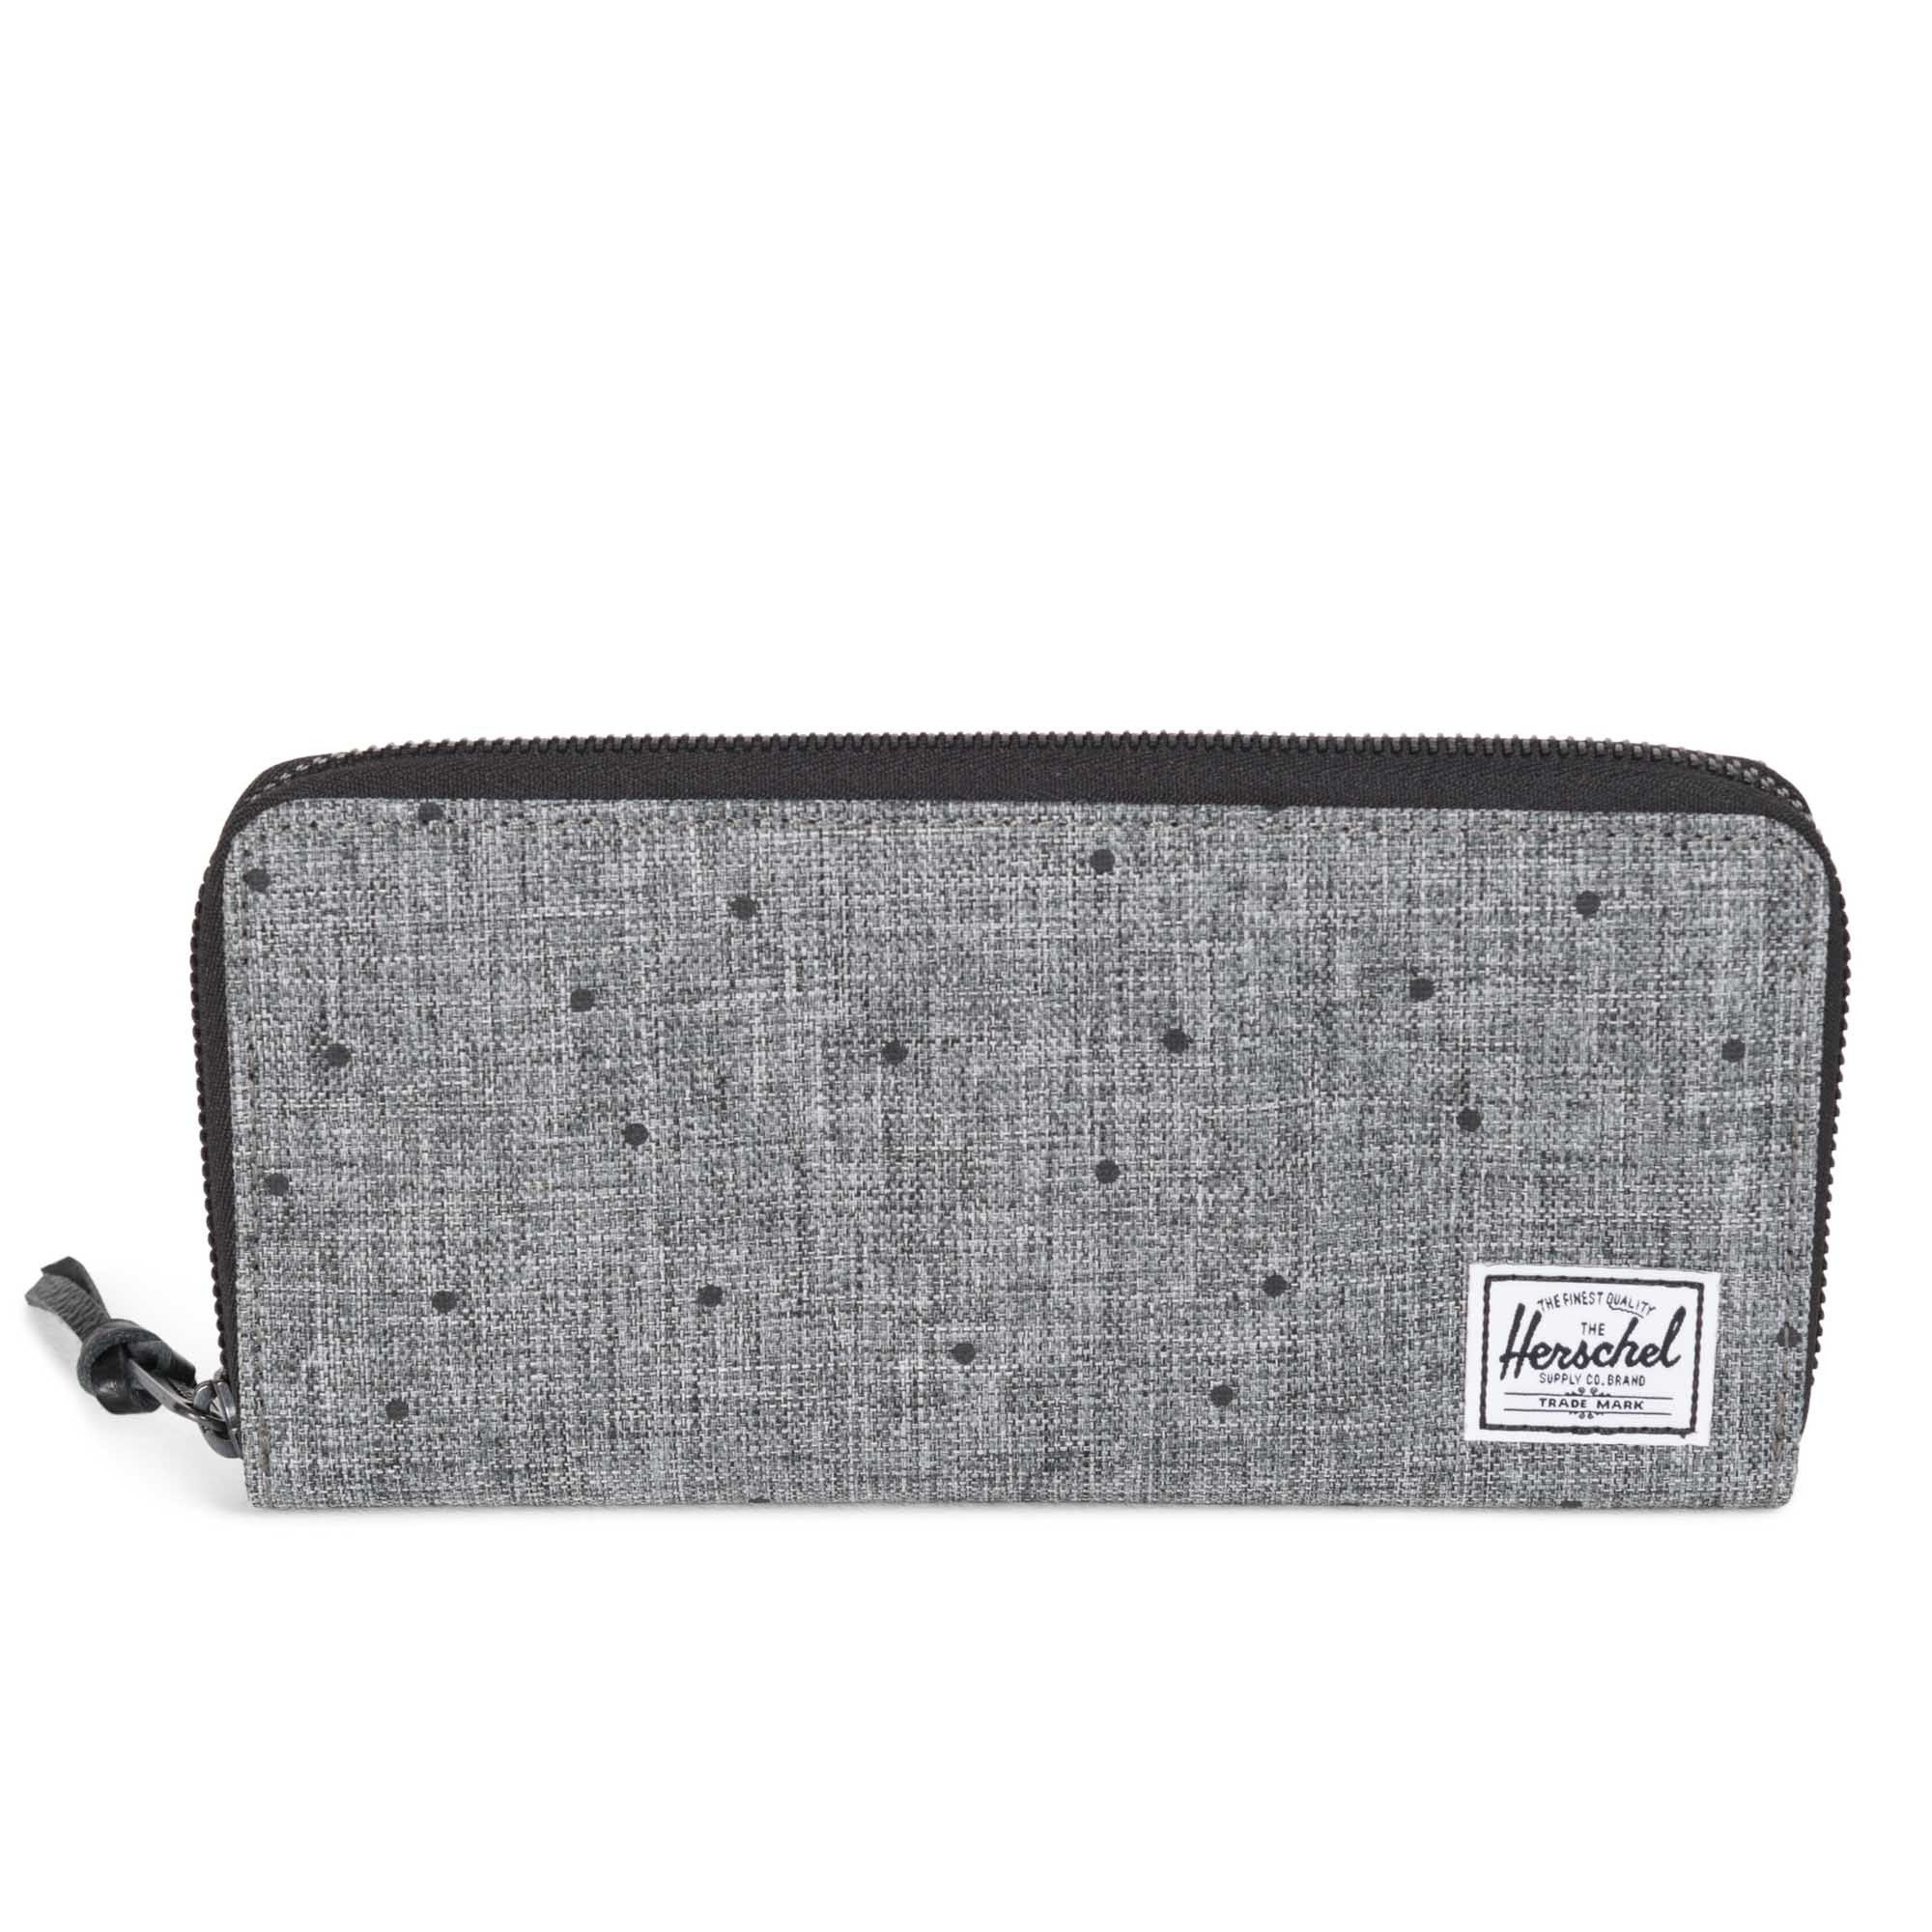 Herschel Avenue Wallet Scattered Raven Crosshatch